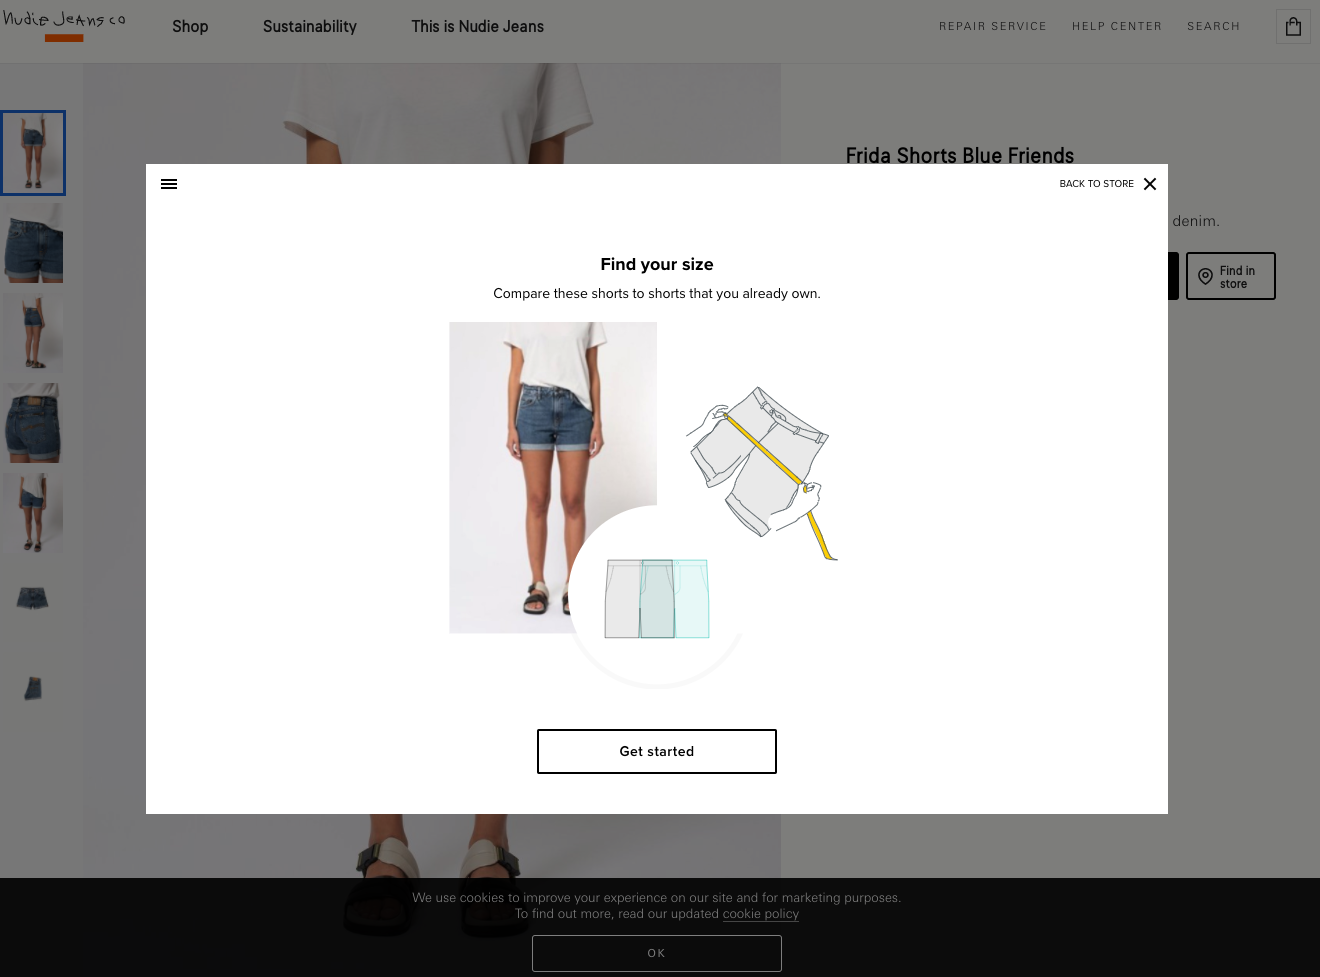 product detail page design best practice